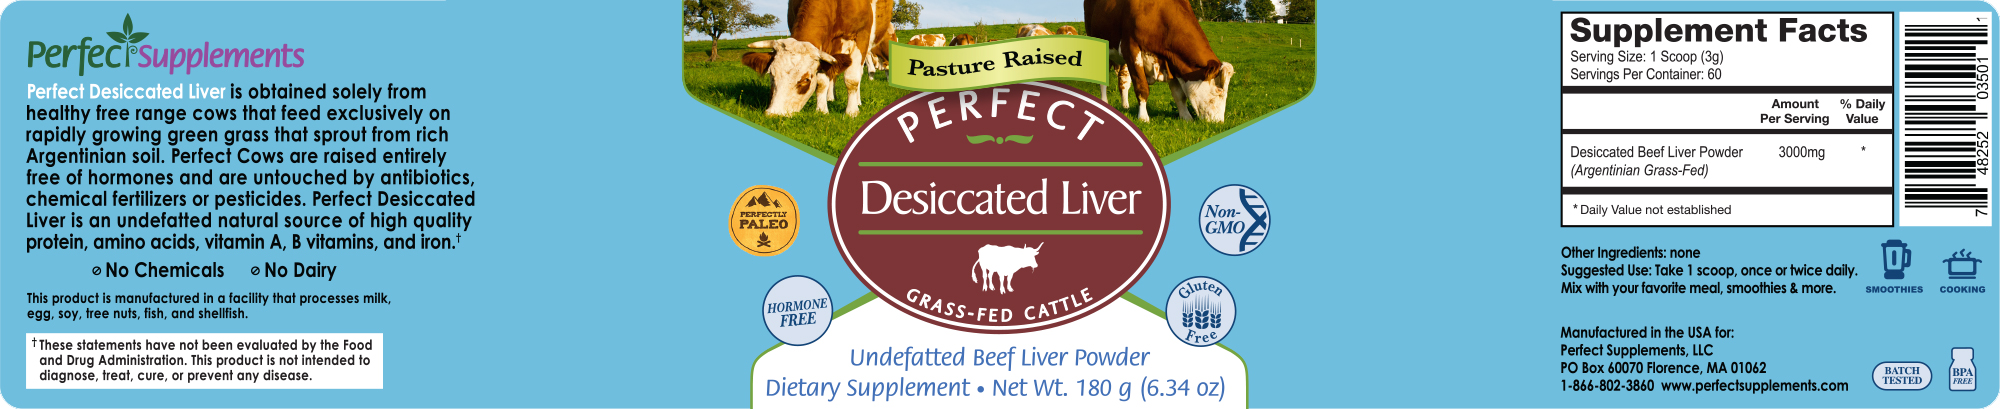 Perfect Desiccated Liver